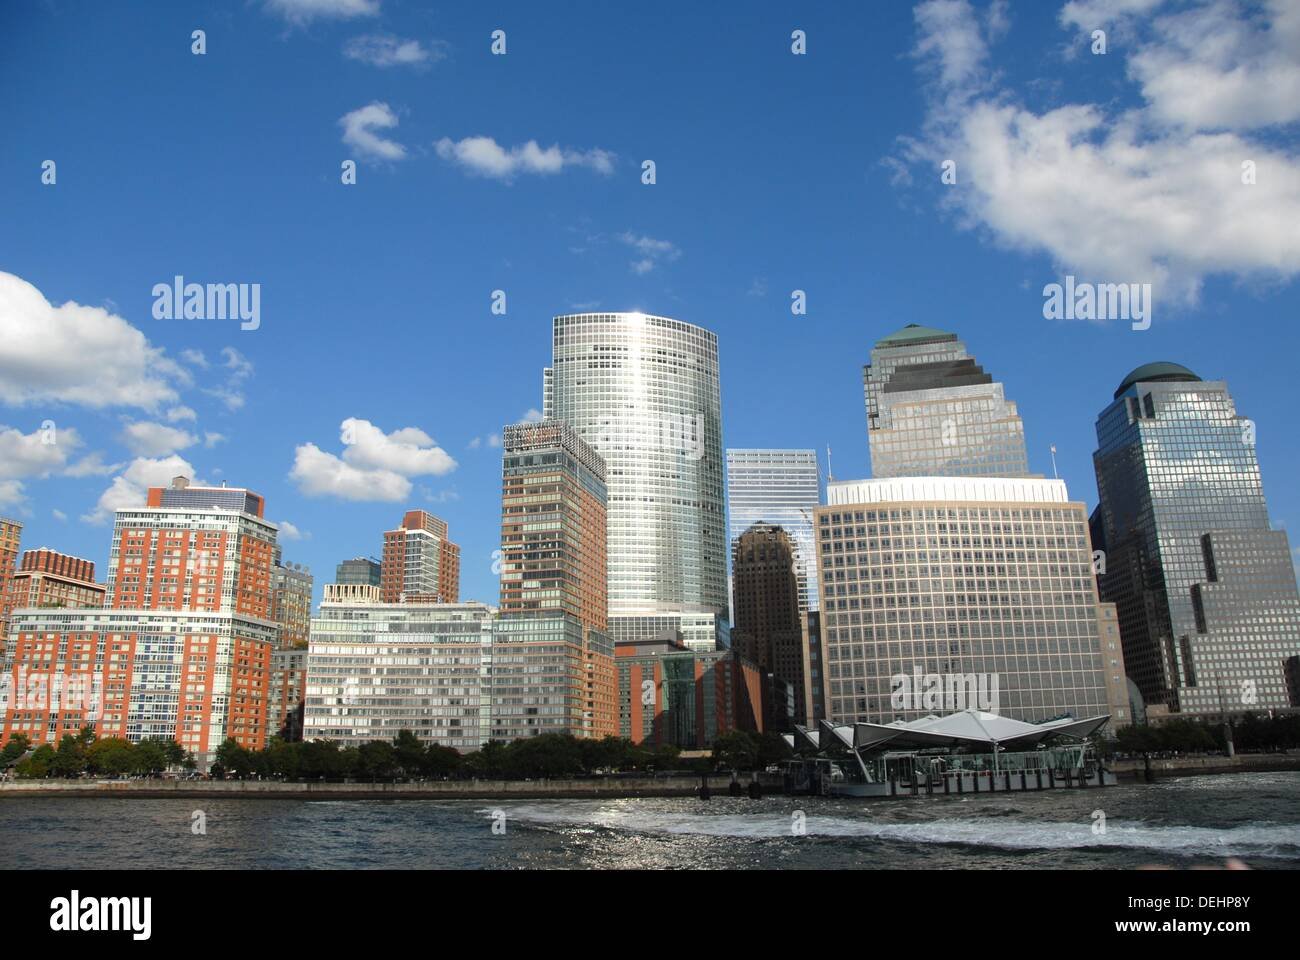 The World Financial Center buildings and Ground Zero from the Hudson River. Lower Manhattan West.  New York, New York. USA. - Stock Image